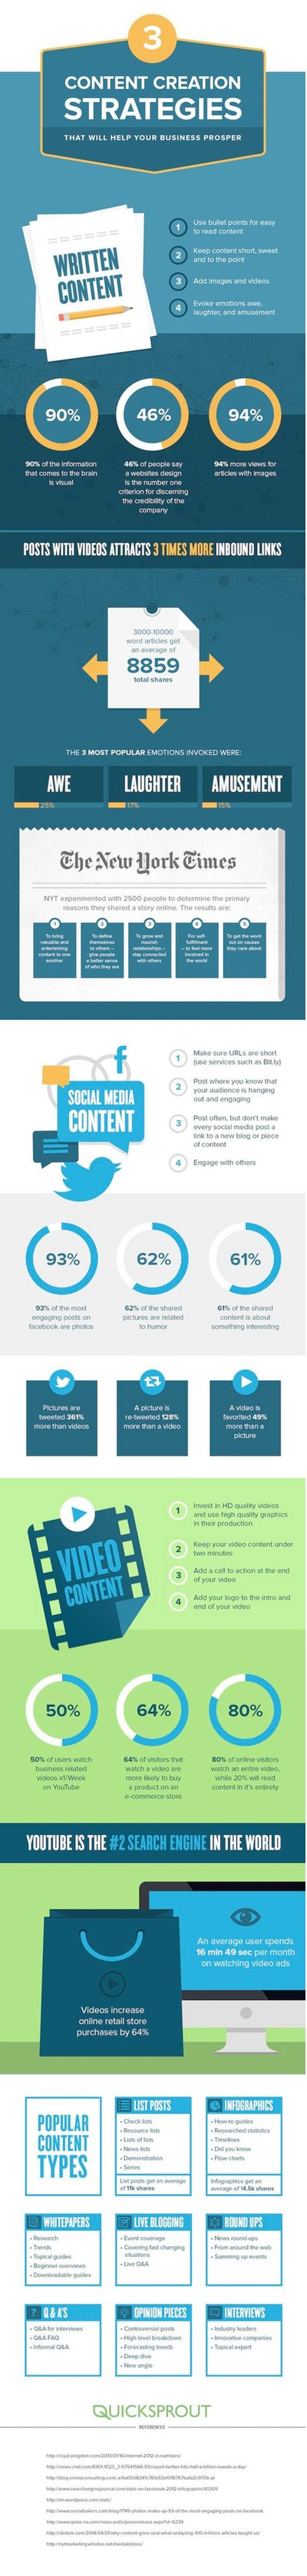 Infographie Content Marketing strategie